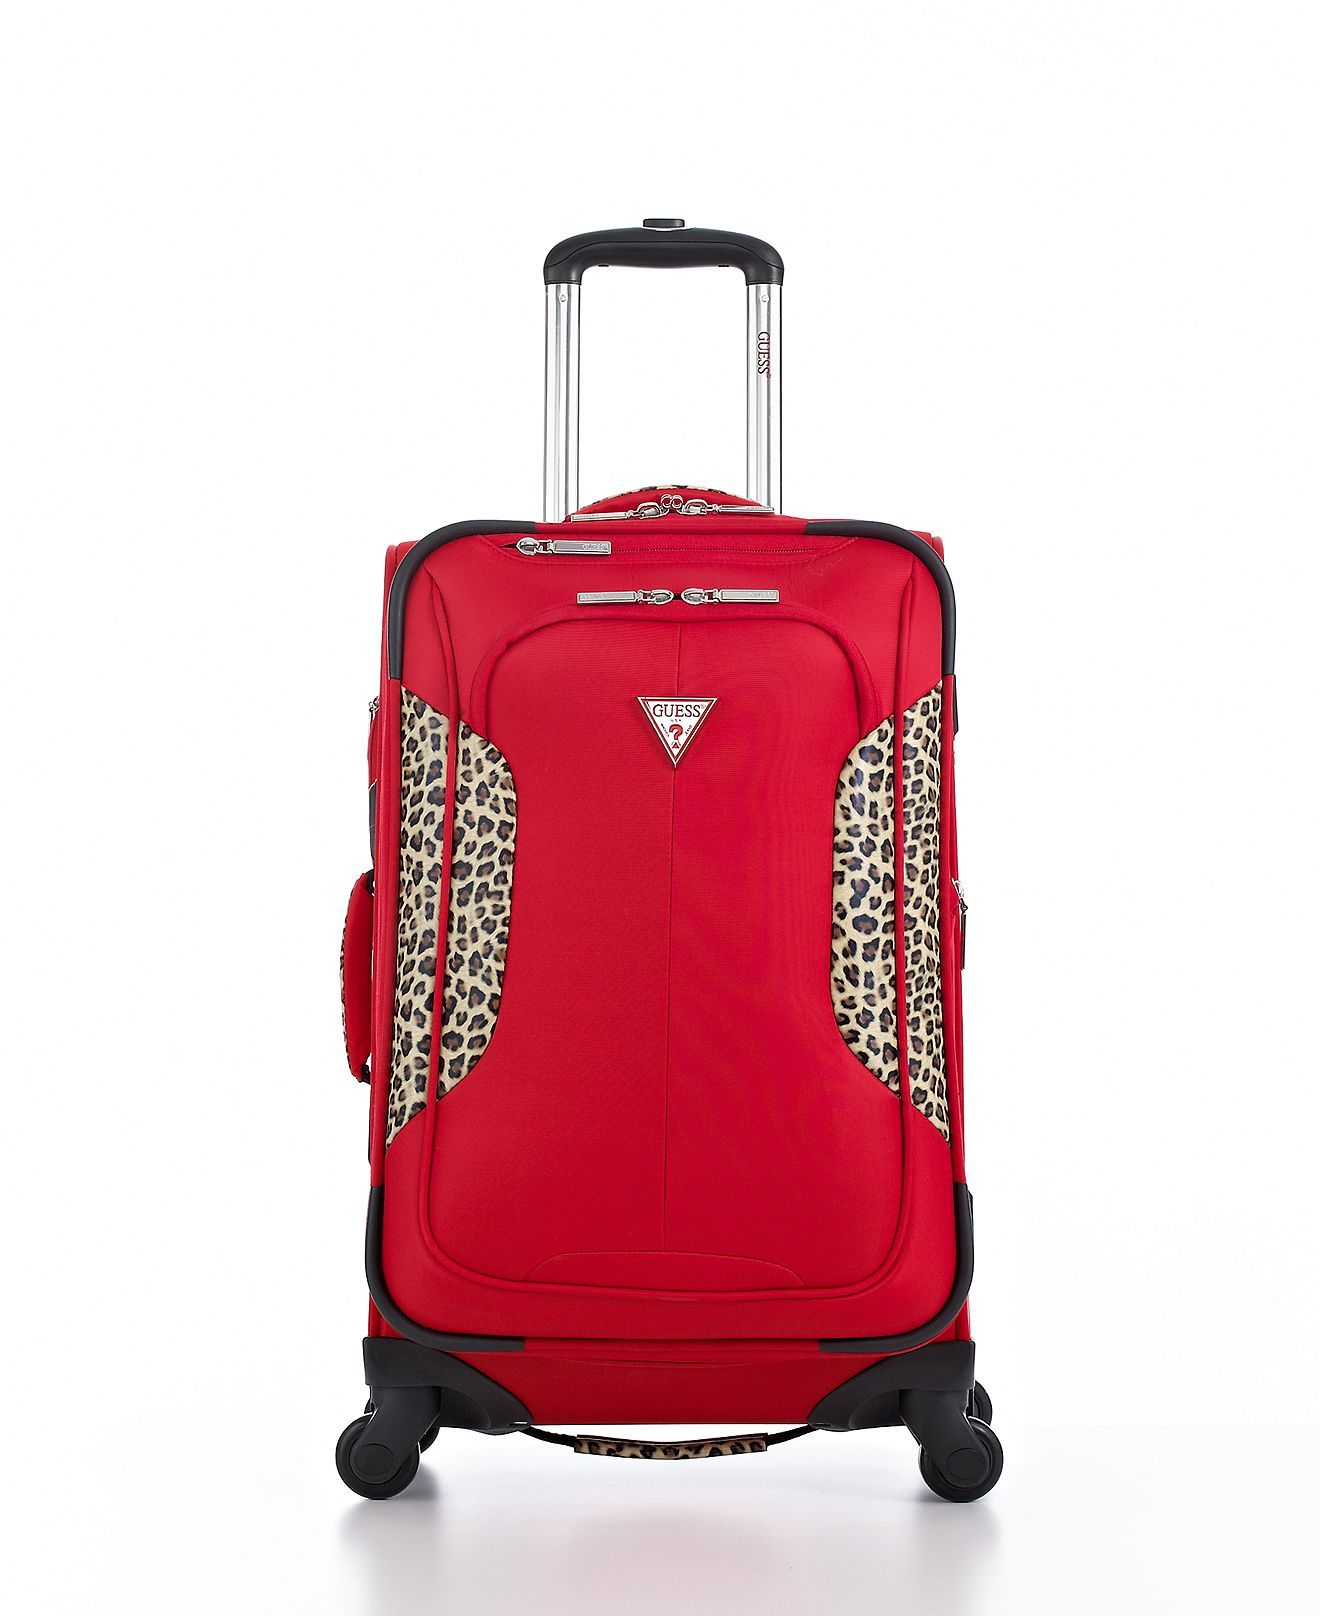 GUESS? Luggage, Luxury Road - Luggage Collections - luggage ...